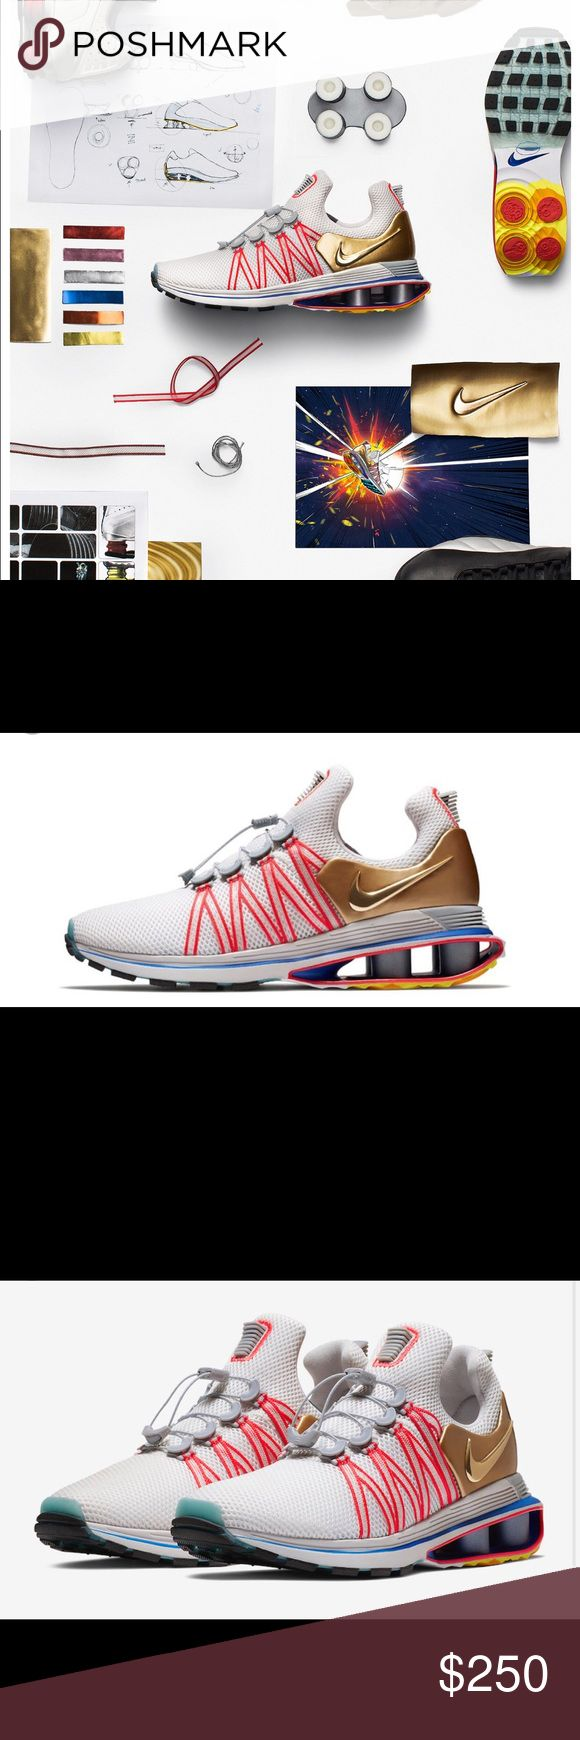 Nike shox Nike shox gravity 'metallic gold' DS with original everything  Very comfortable and